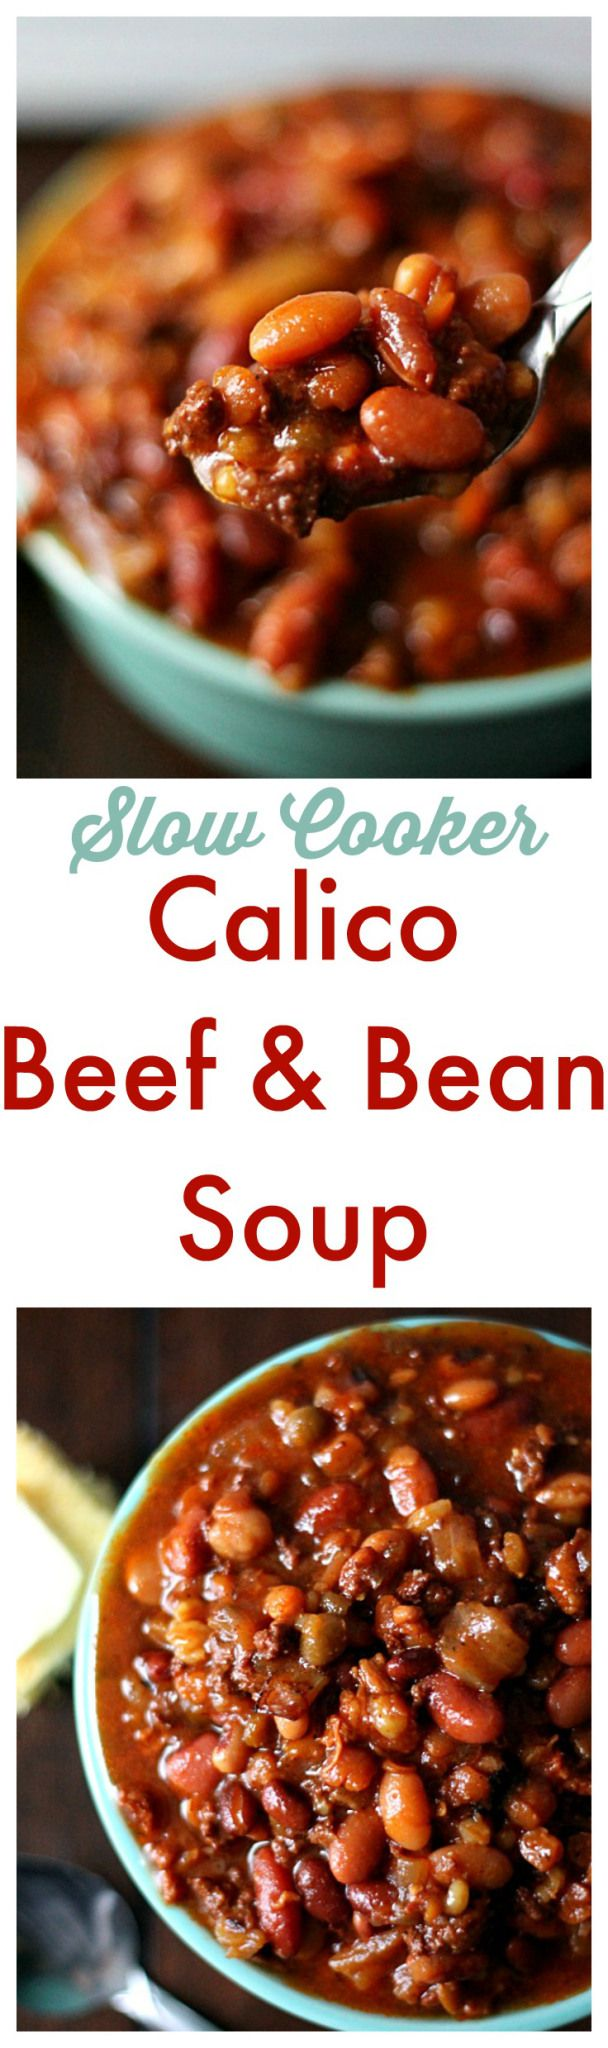 Slow Cooker Recipe For Spicy Ground Beef And Bean Soup With Cabbage ...